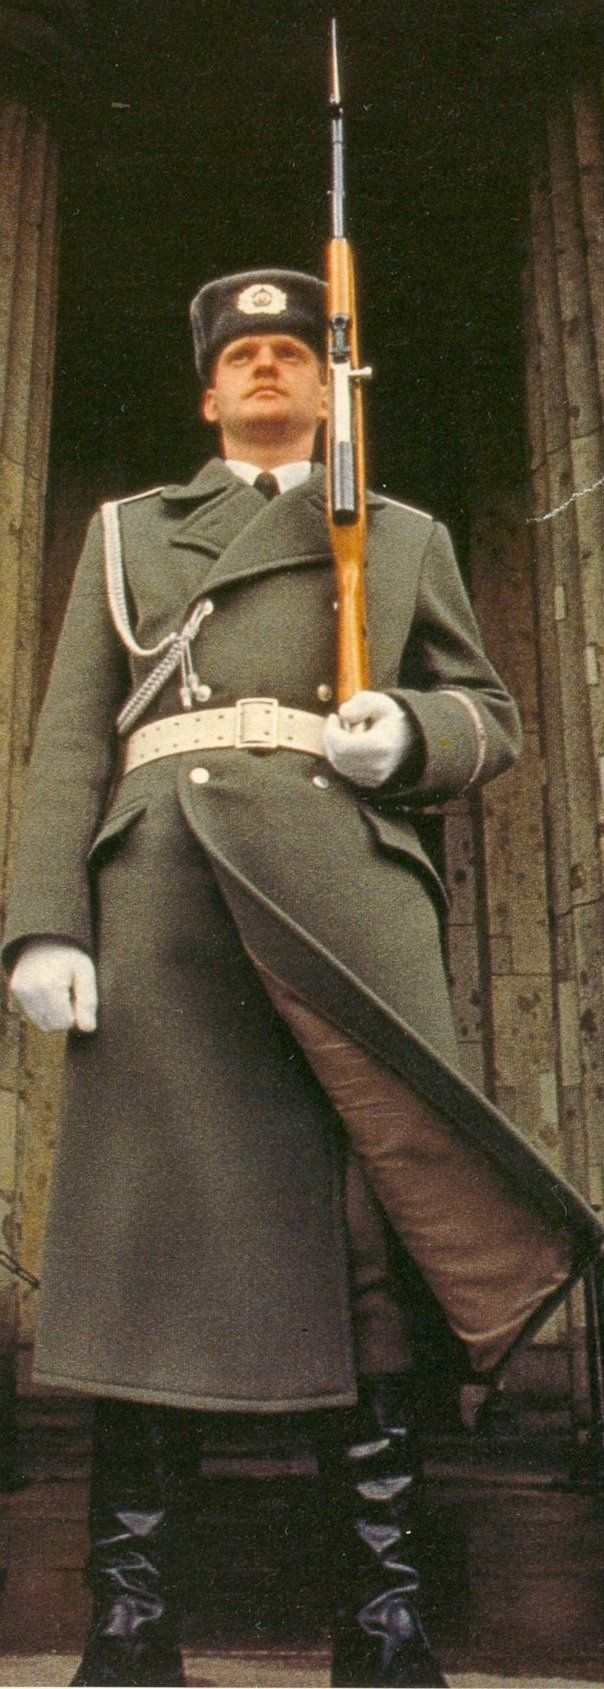 Soldier of the Friedrich Engels Guard Regiment at the gate of the Neue Wache in Berlin.